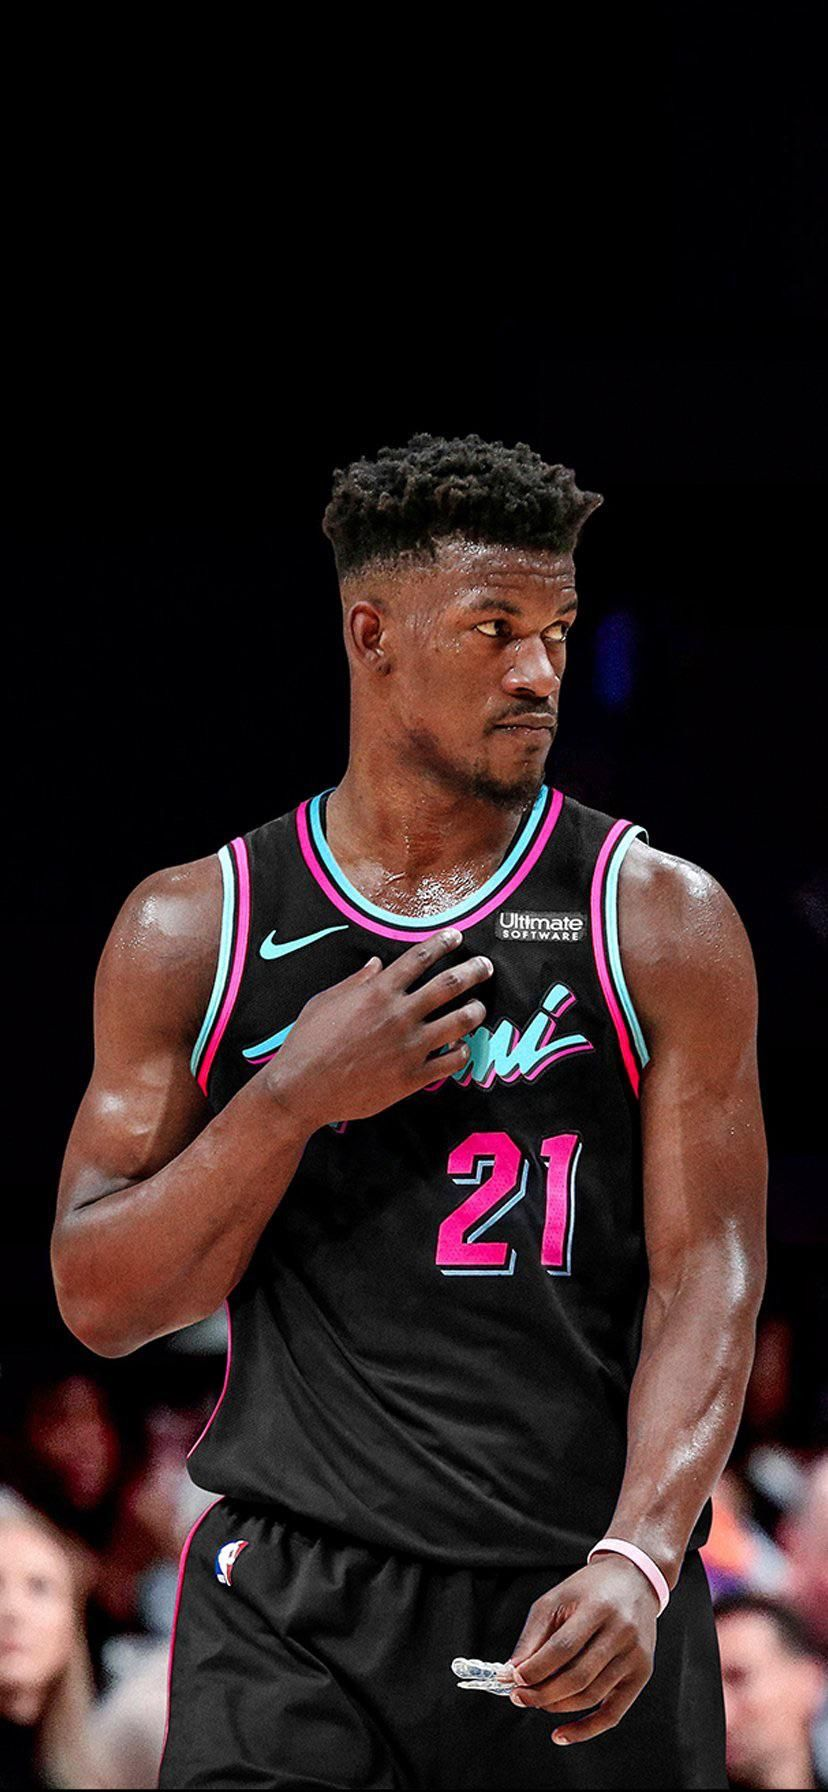 Jimmy Butler in 2020 (With images) Best nba players